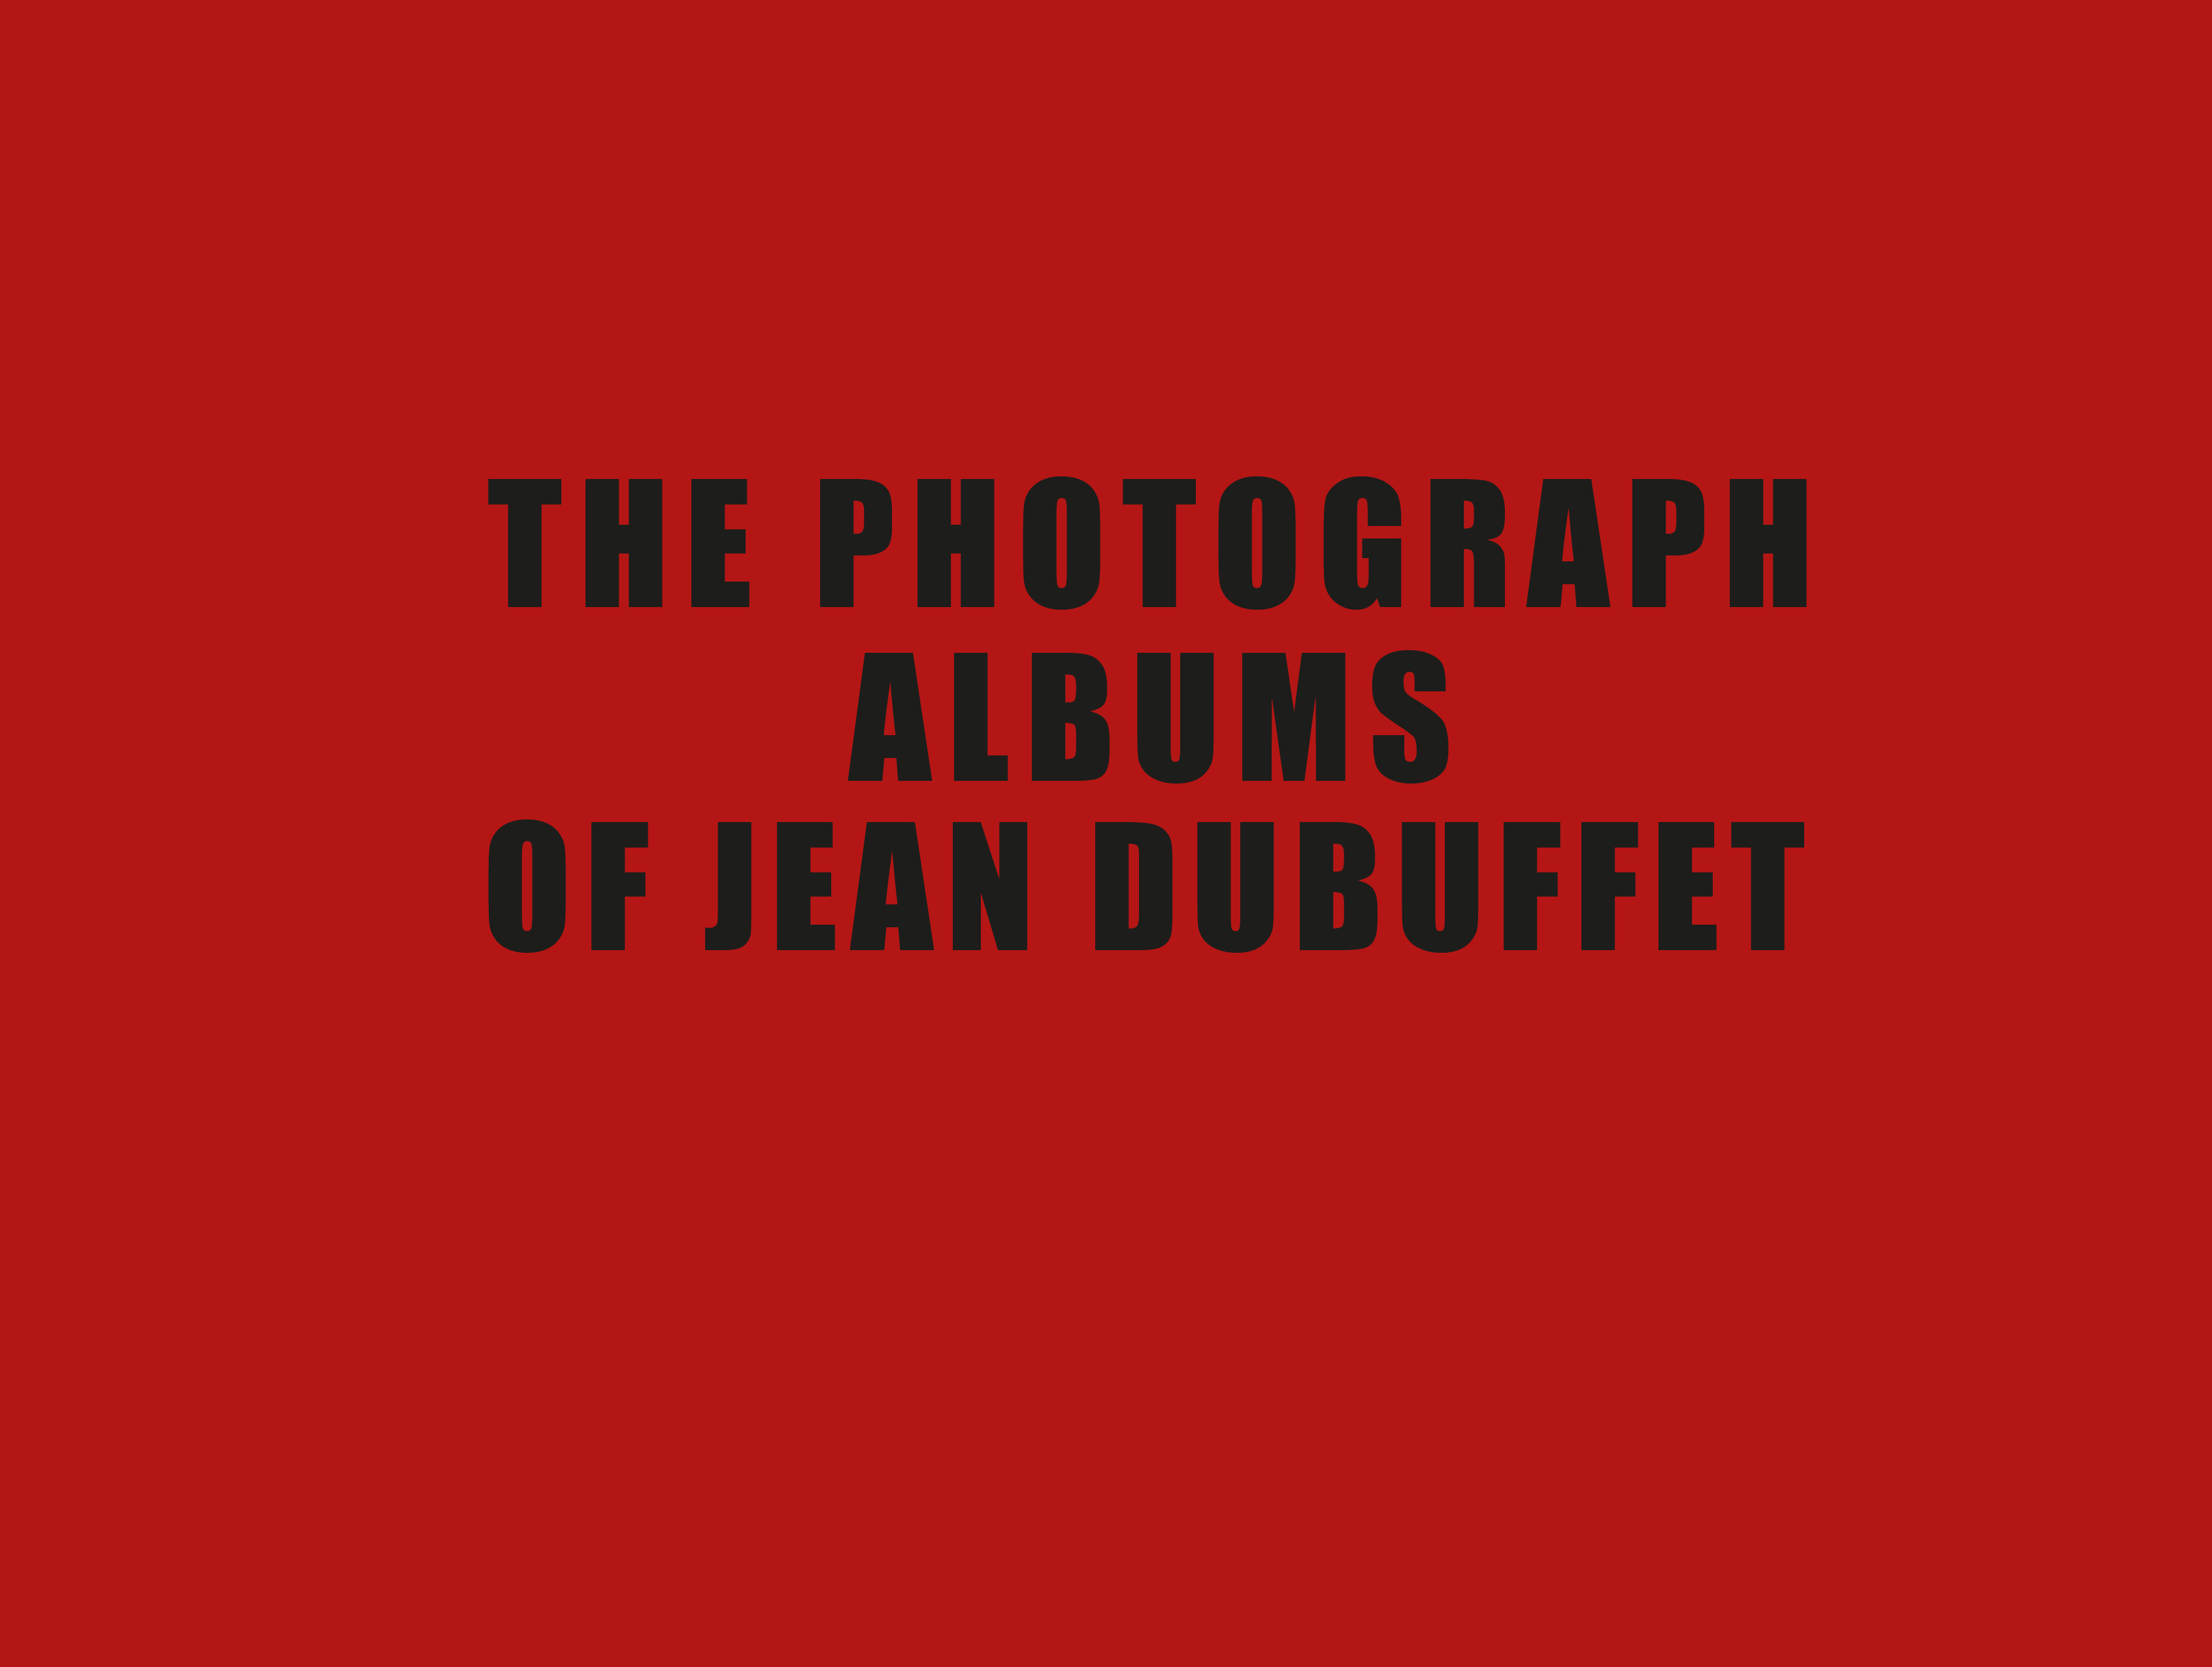 The Photograph Albums of Jean Dubuffet